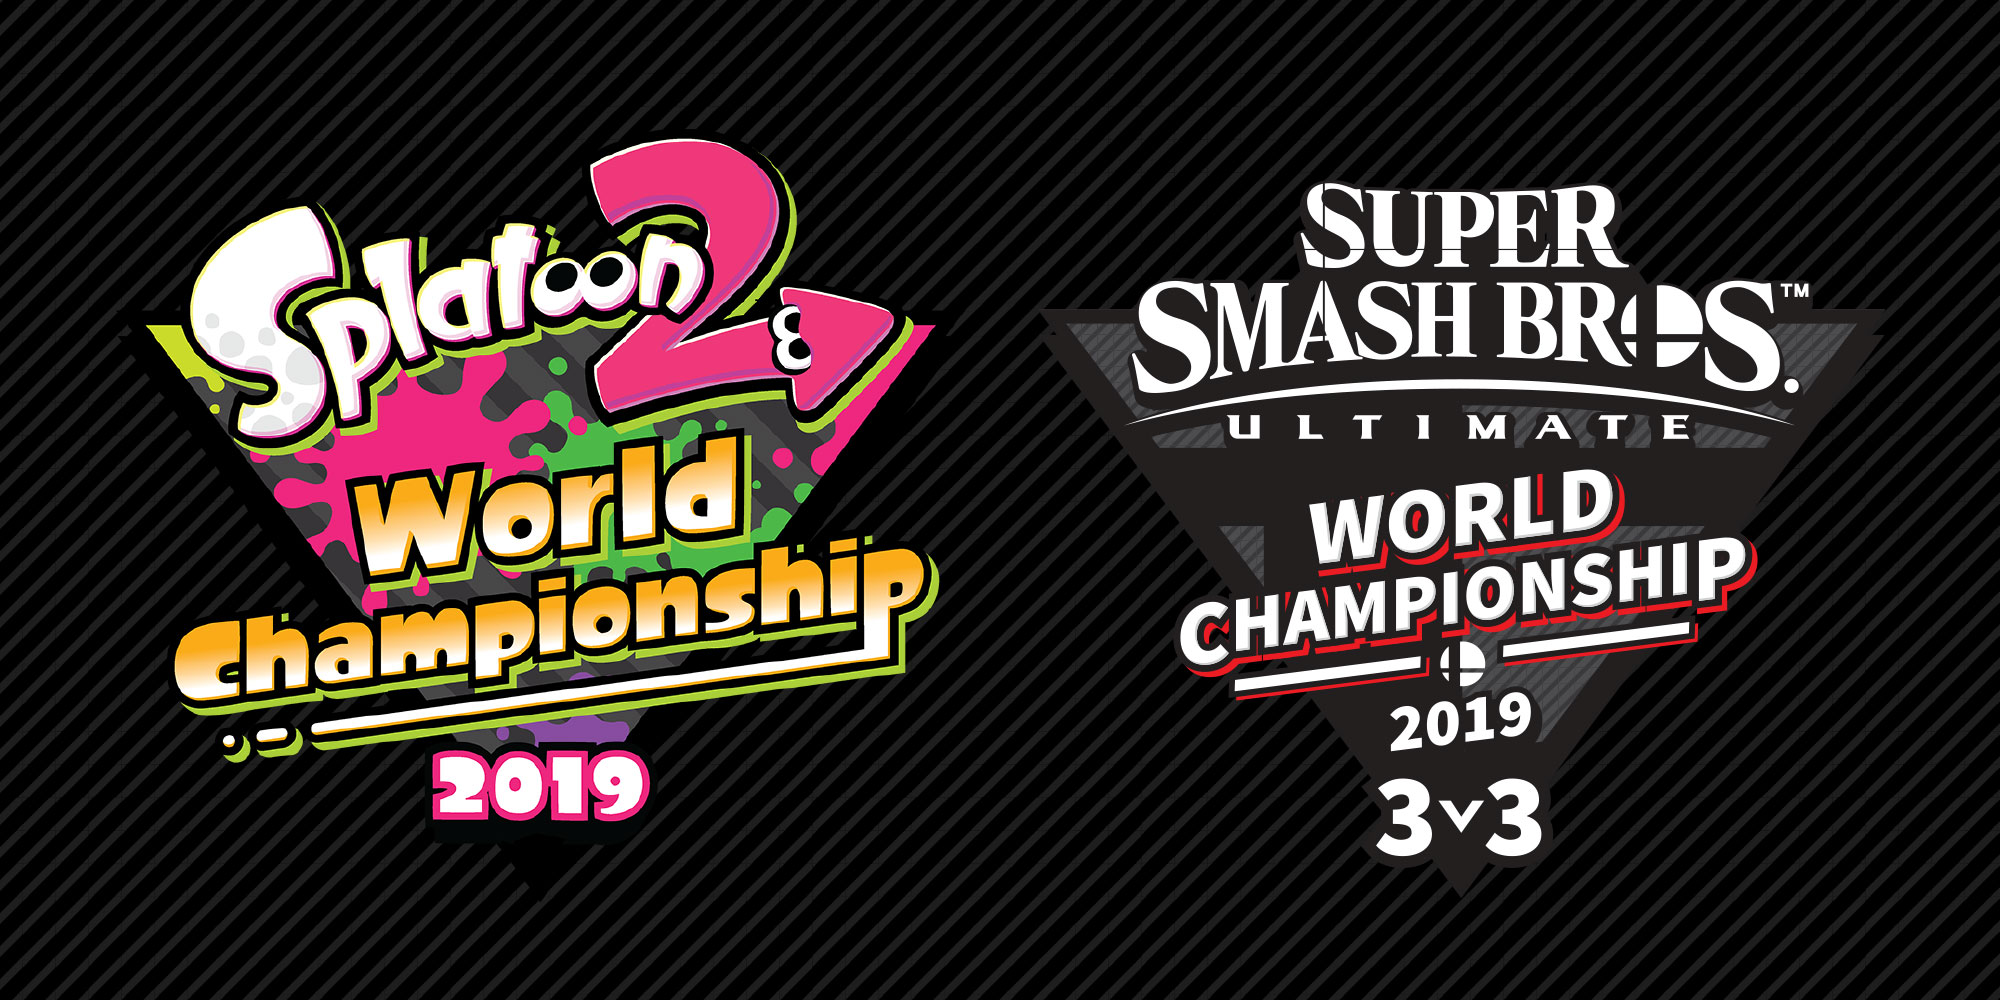 Incoronati i campioni del mondo di Splatoon 2 e Super Smash Bros. Ultimate ai tornei dell'E3 2019!